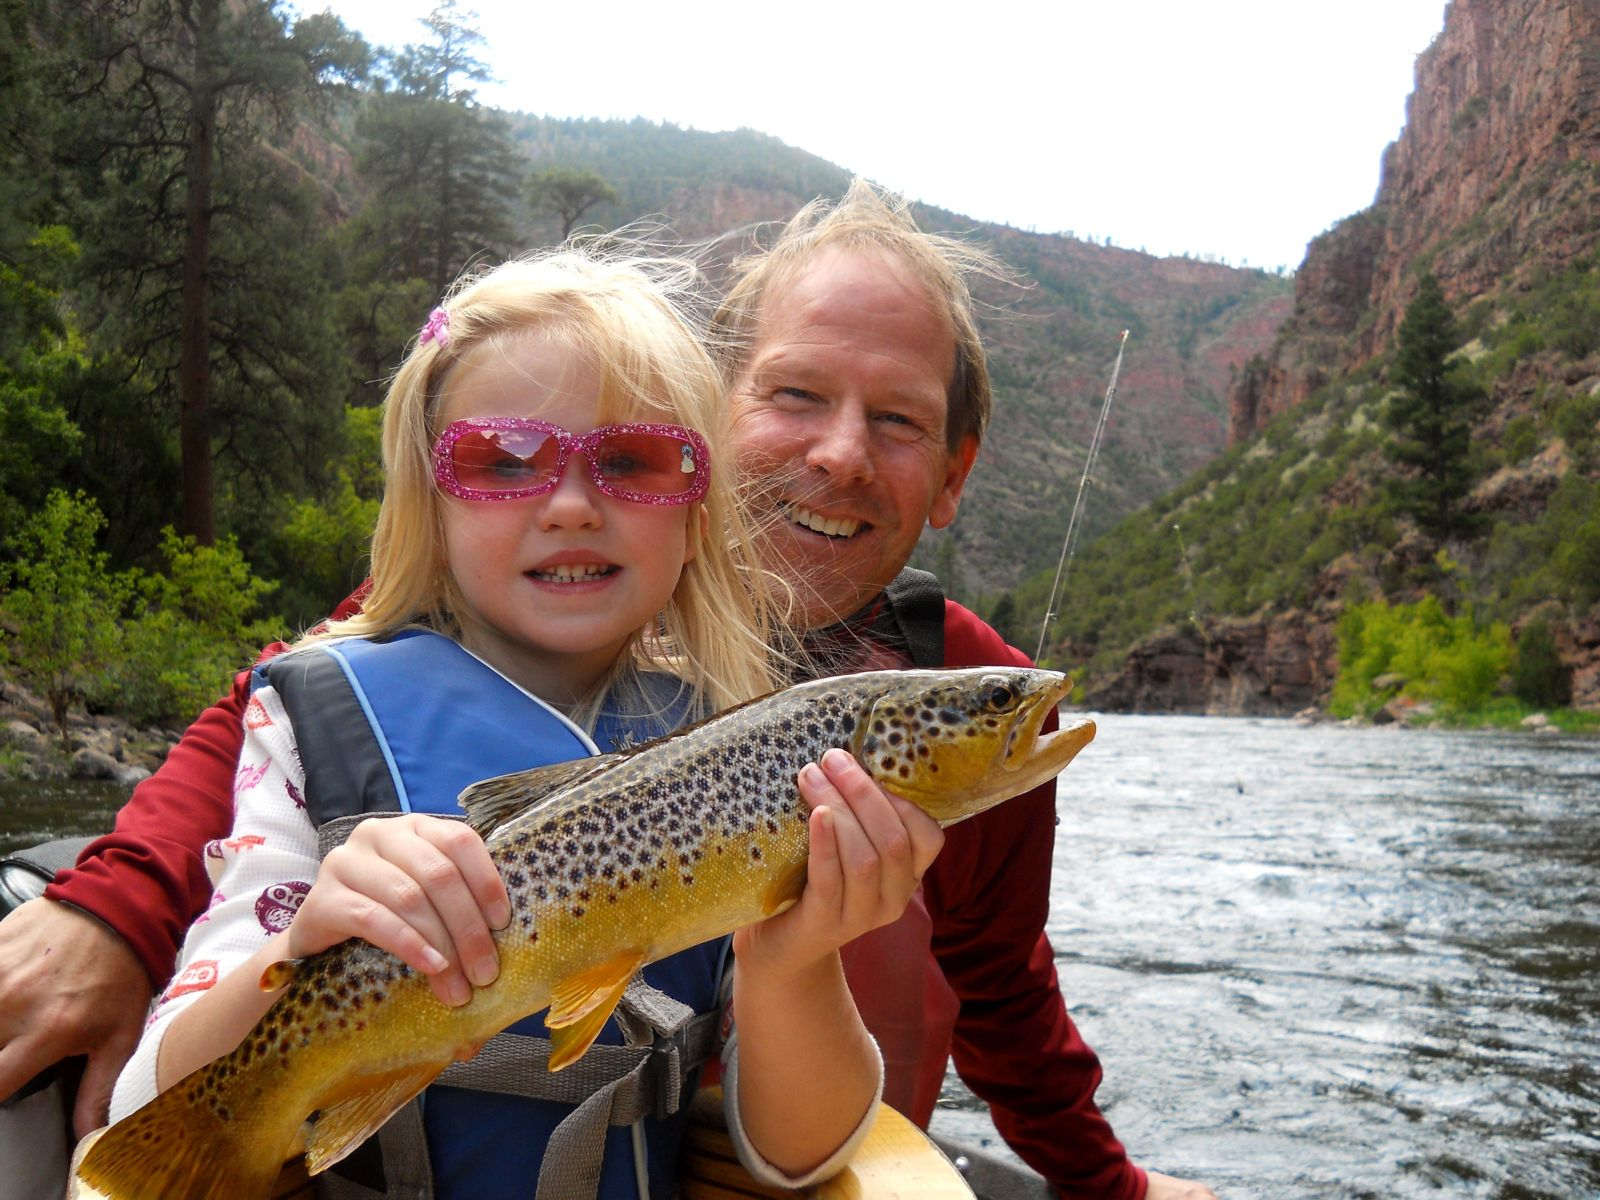 Below the Flaming Gorge Dam, the Green River is one of the finest fly-fishing destinations in the country.